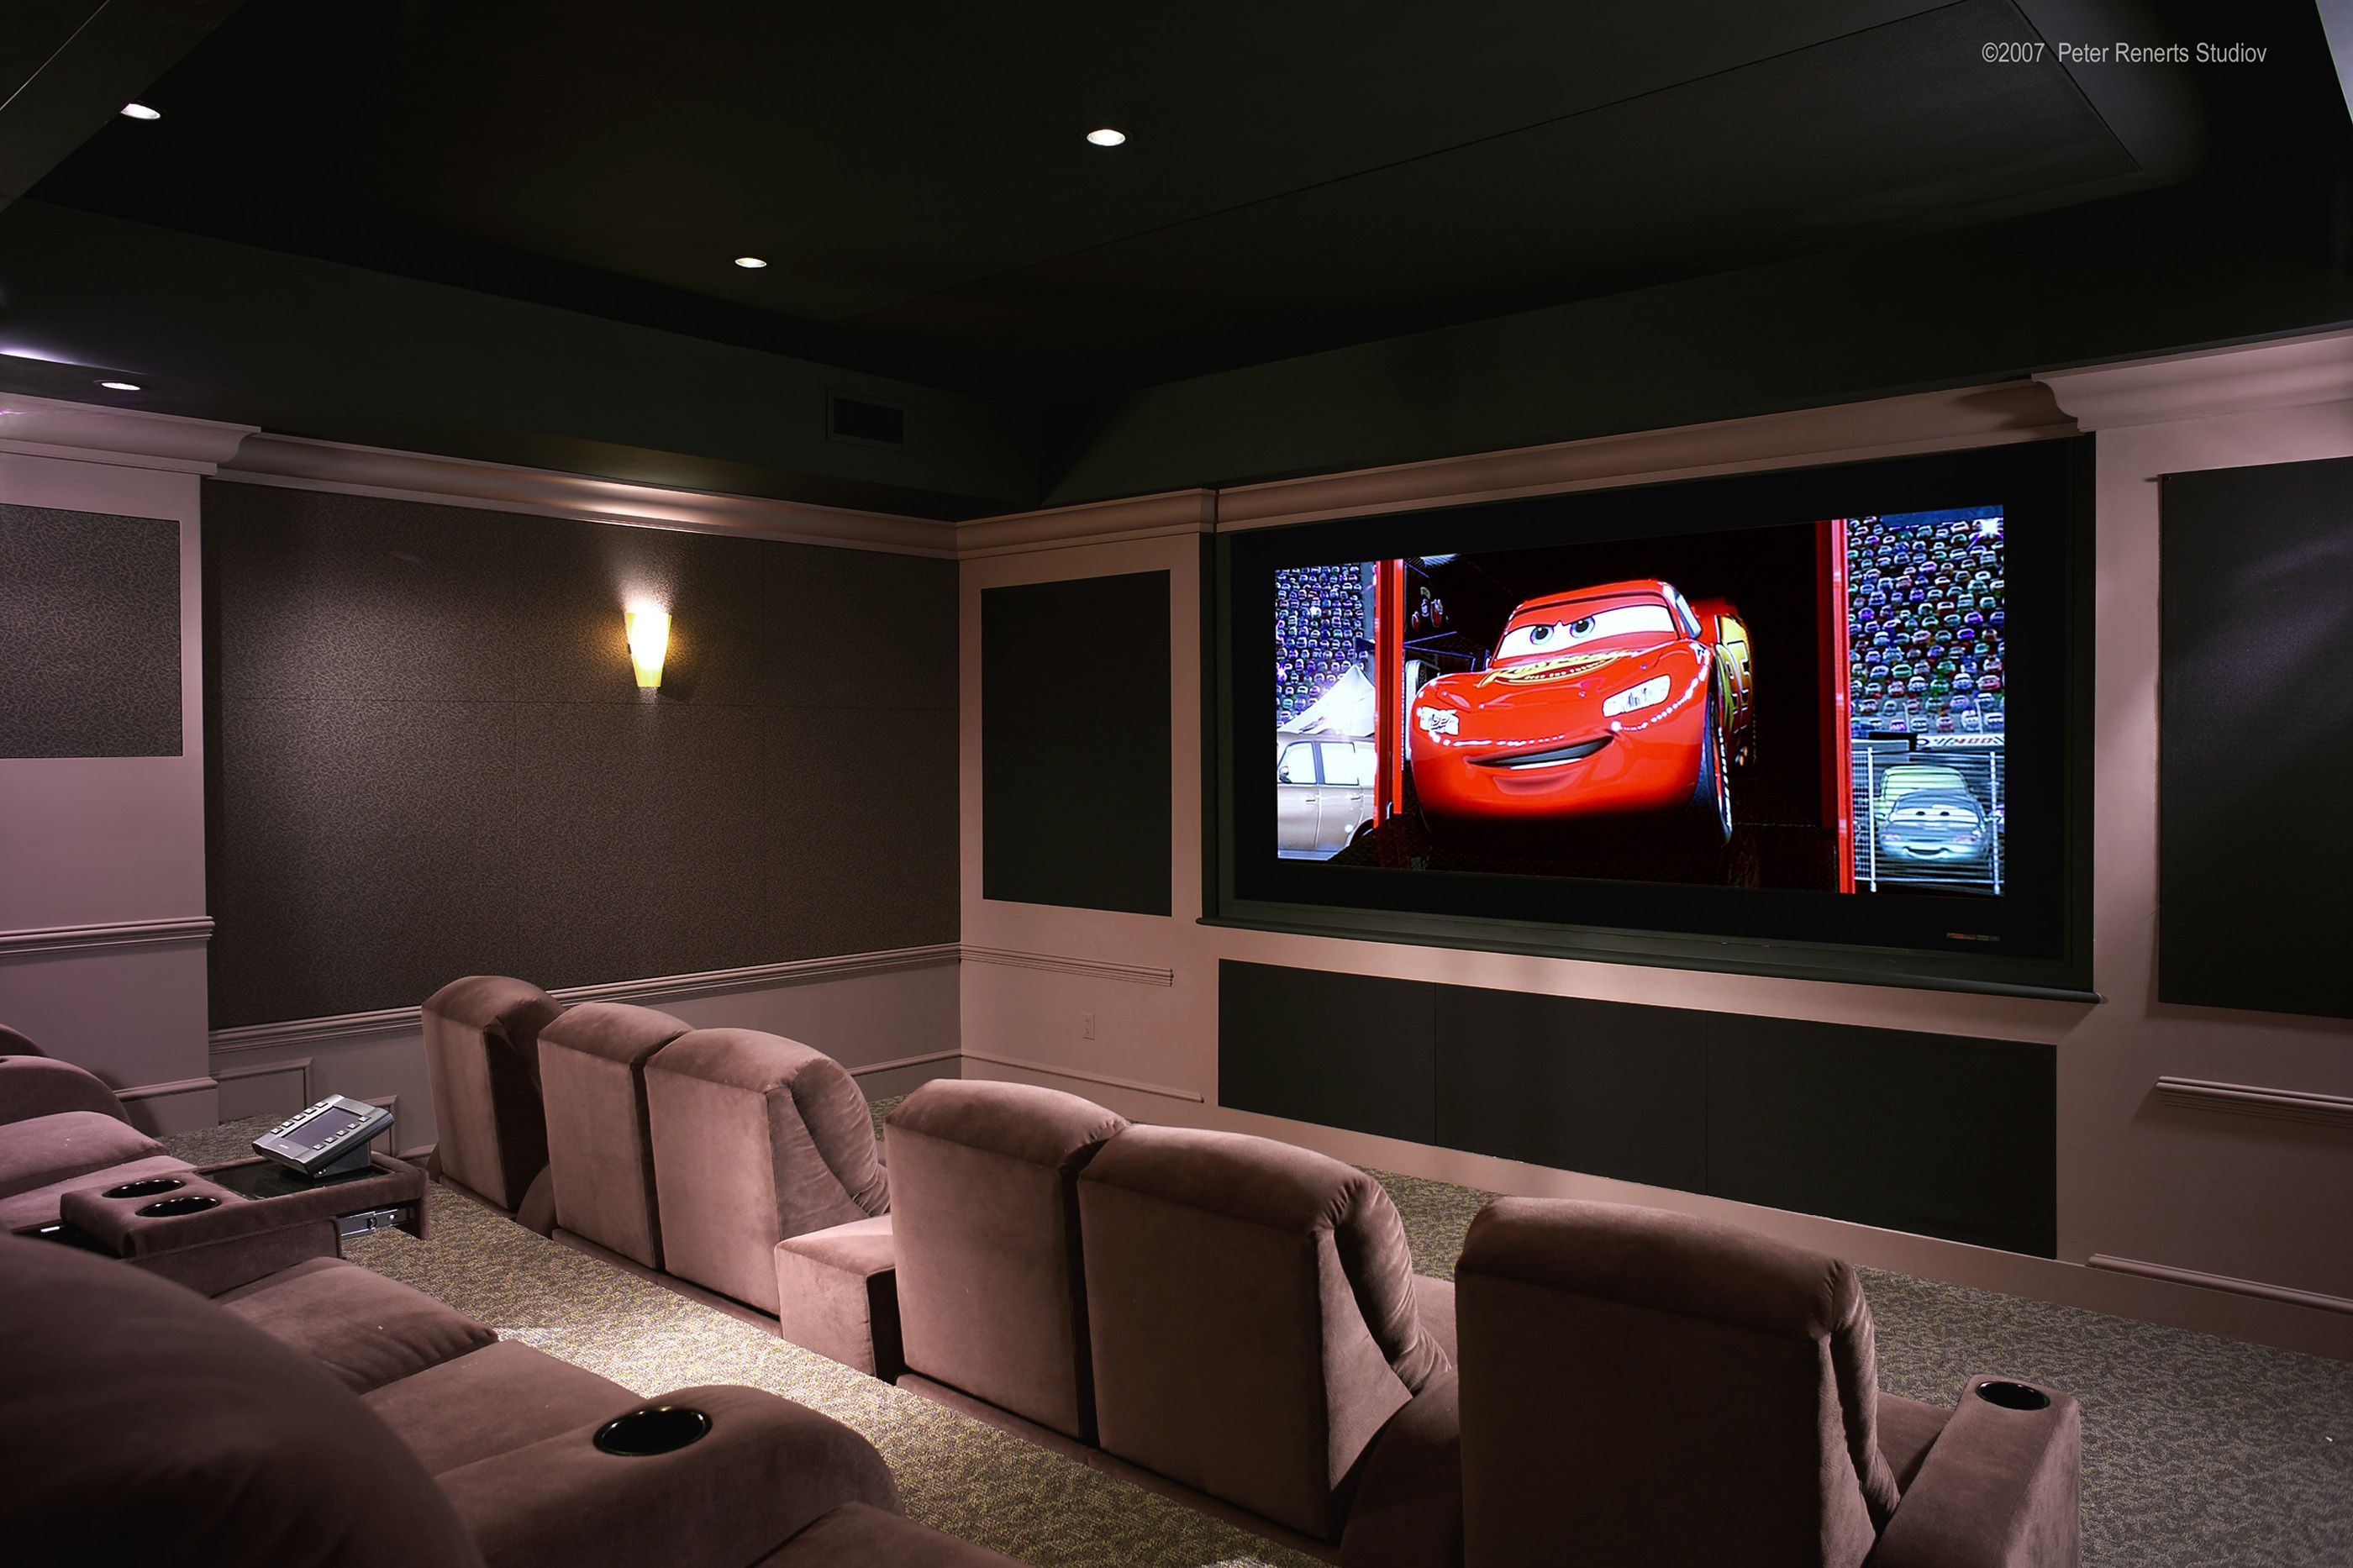 Charmant Decorating Small Home Theater Room Pictures The Gray Area Rug Combined With  Great Lcd On The Brown Wallinterior Ideas Astounding Home Theatre Design  Ideas ...